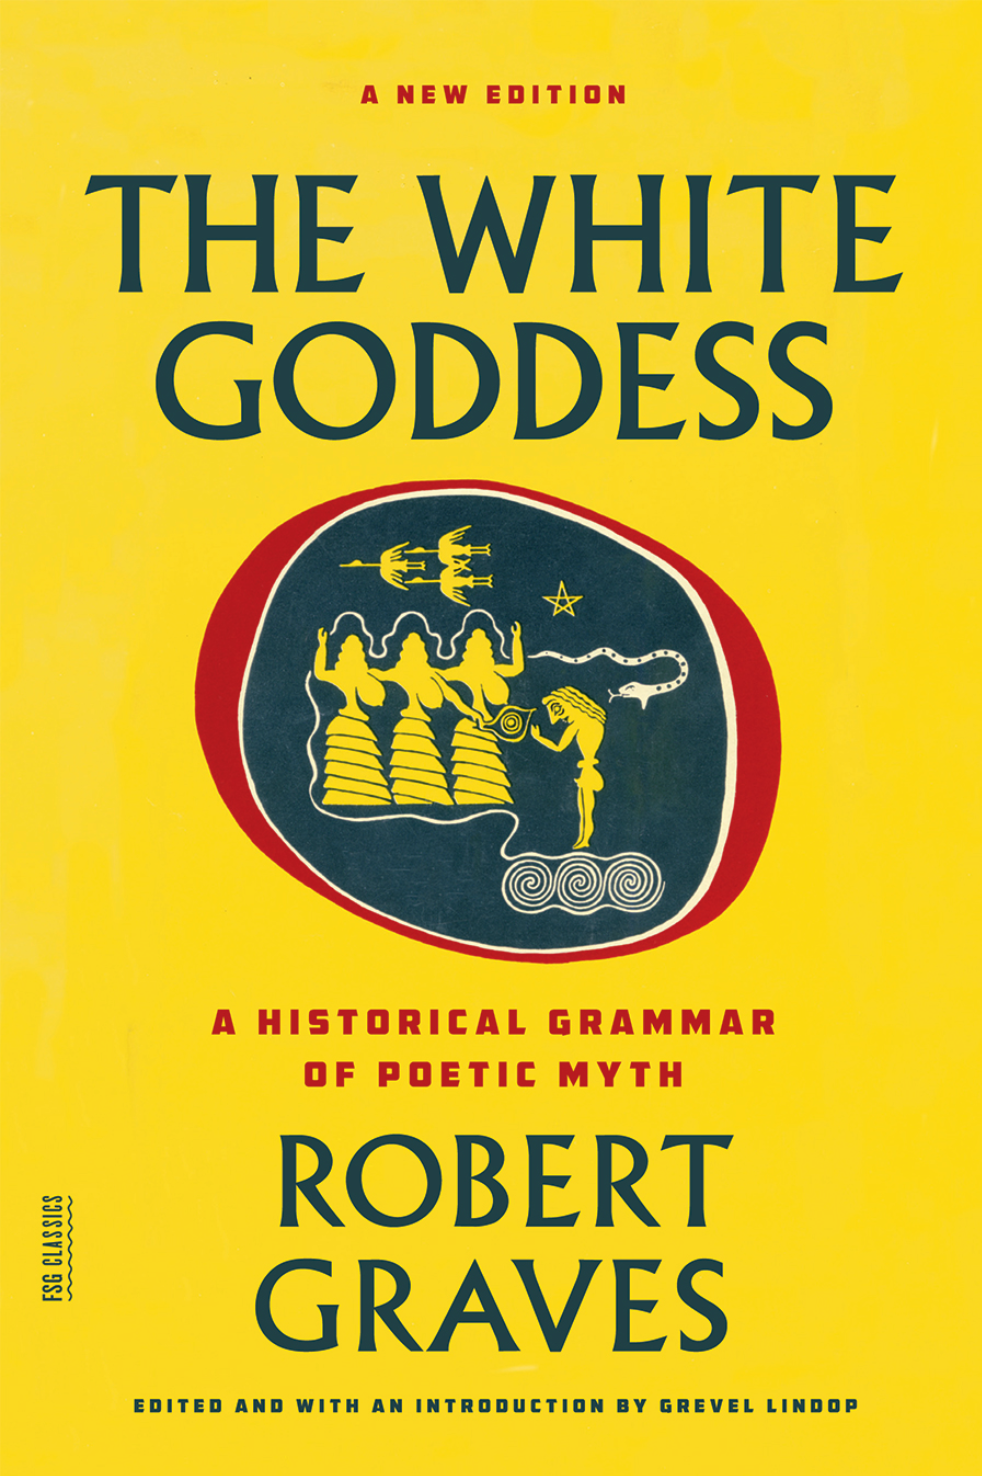 Robert Graves,  The White Goddess , 1948 (new edition, 2013). Courtesy: Farrar, Straus and Giroux